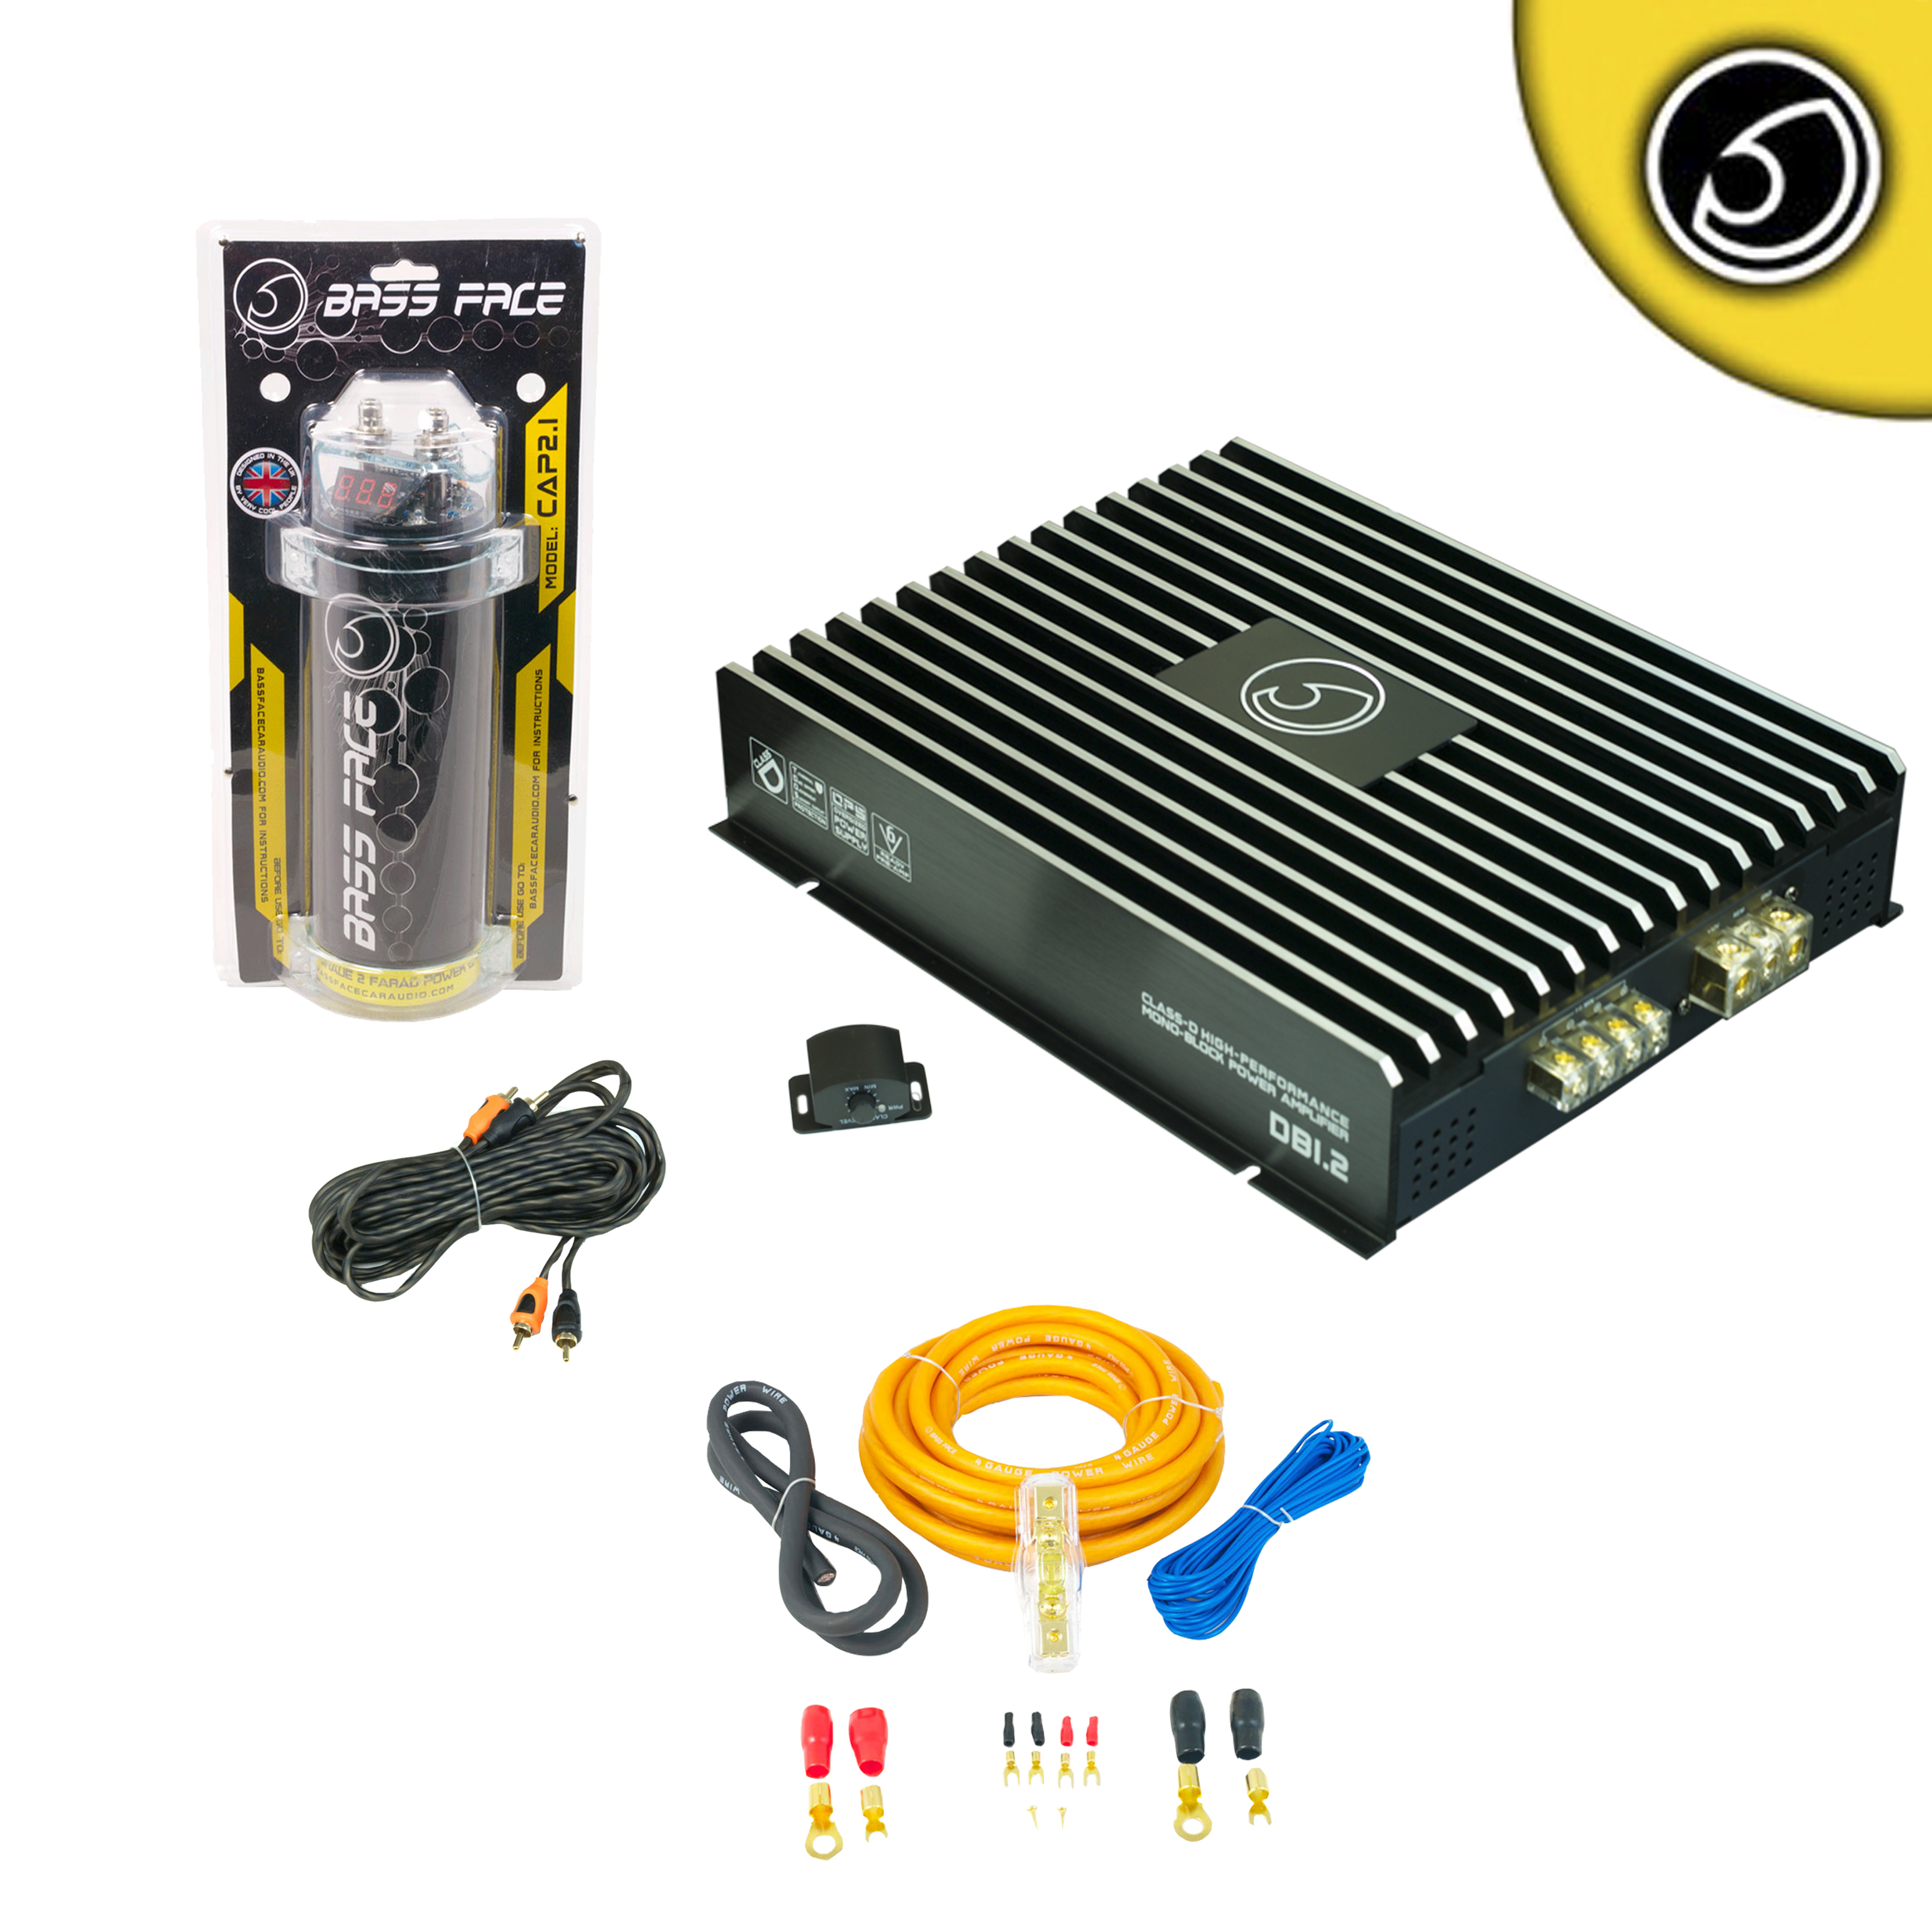 Thompsons Ltd Bassface Db12 2000w Car Audio Amp Amplifier 2 Pro 4 Gauge Install Wiring Kit Complete Cables Farad Power Cap